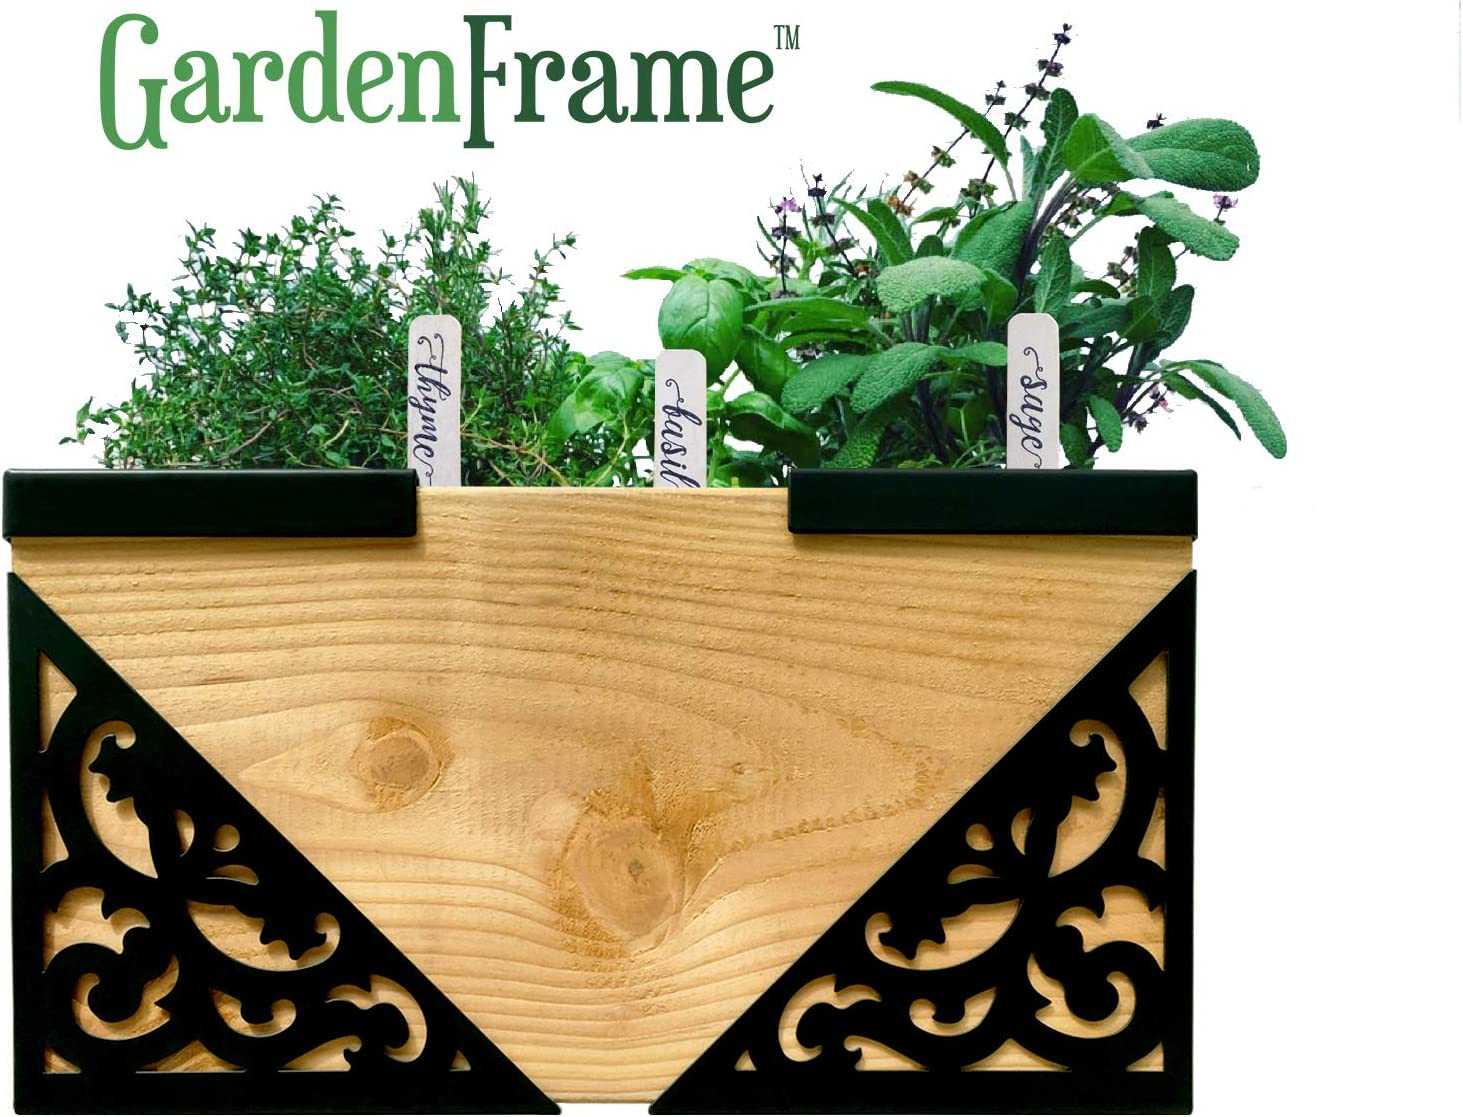 GardenFrame Victorian Farmhouse Raised Garden Bed Kit 4 Steel Corners with Matching Caps Organic Black, Outdoor Large Planters, Flower Bed, Vegetable Garden, Herb Garden, Planter Box …